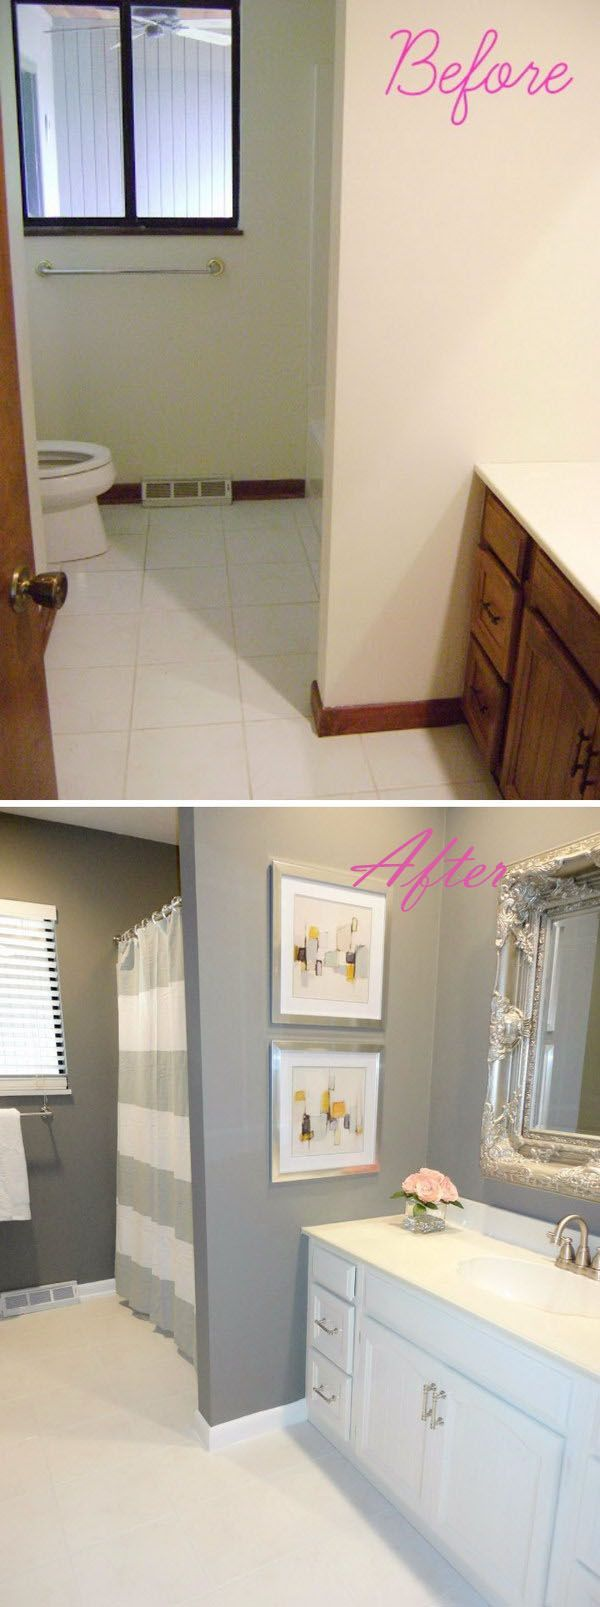 Two mirrors in master replaces the one large mirror.   DIY Bathroom Remodel on a Budget.